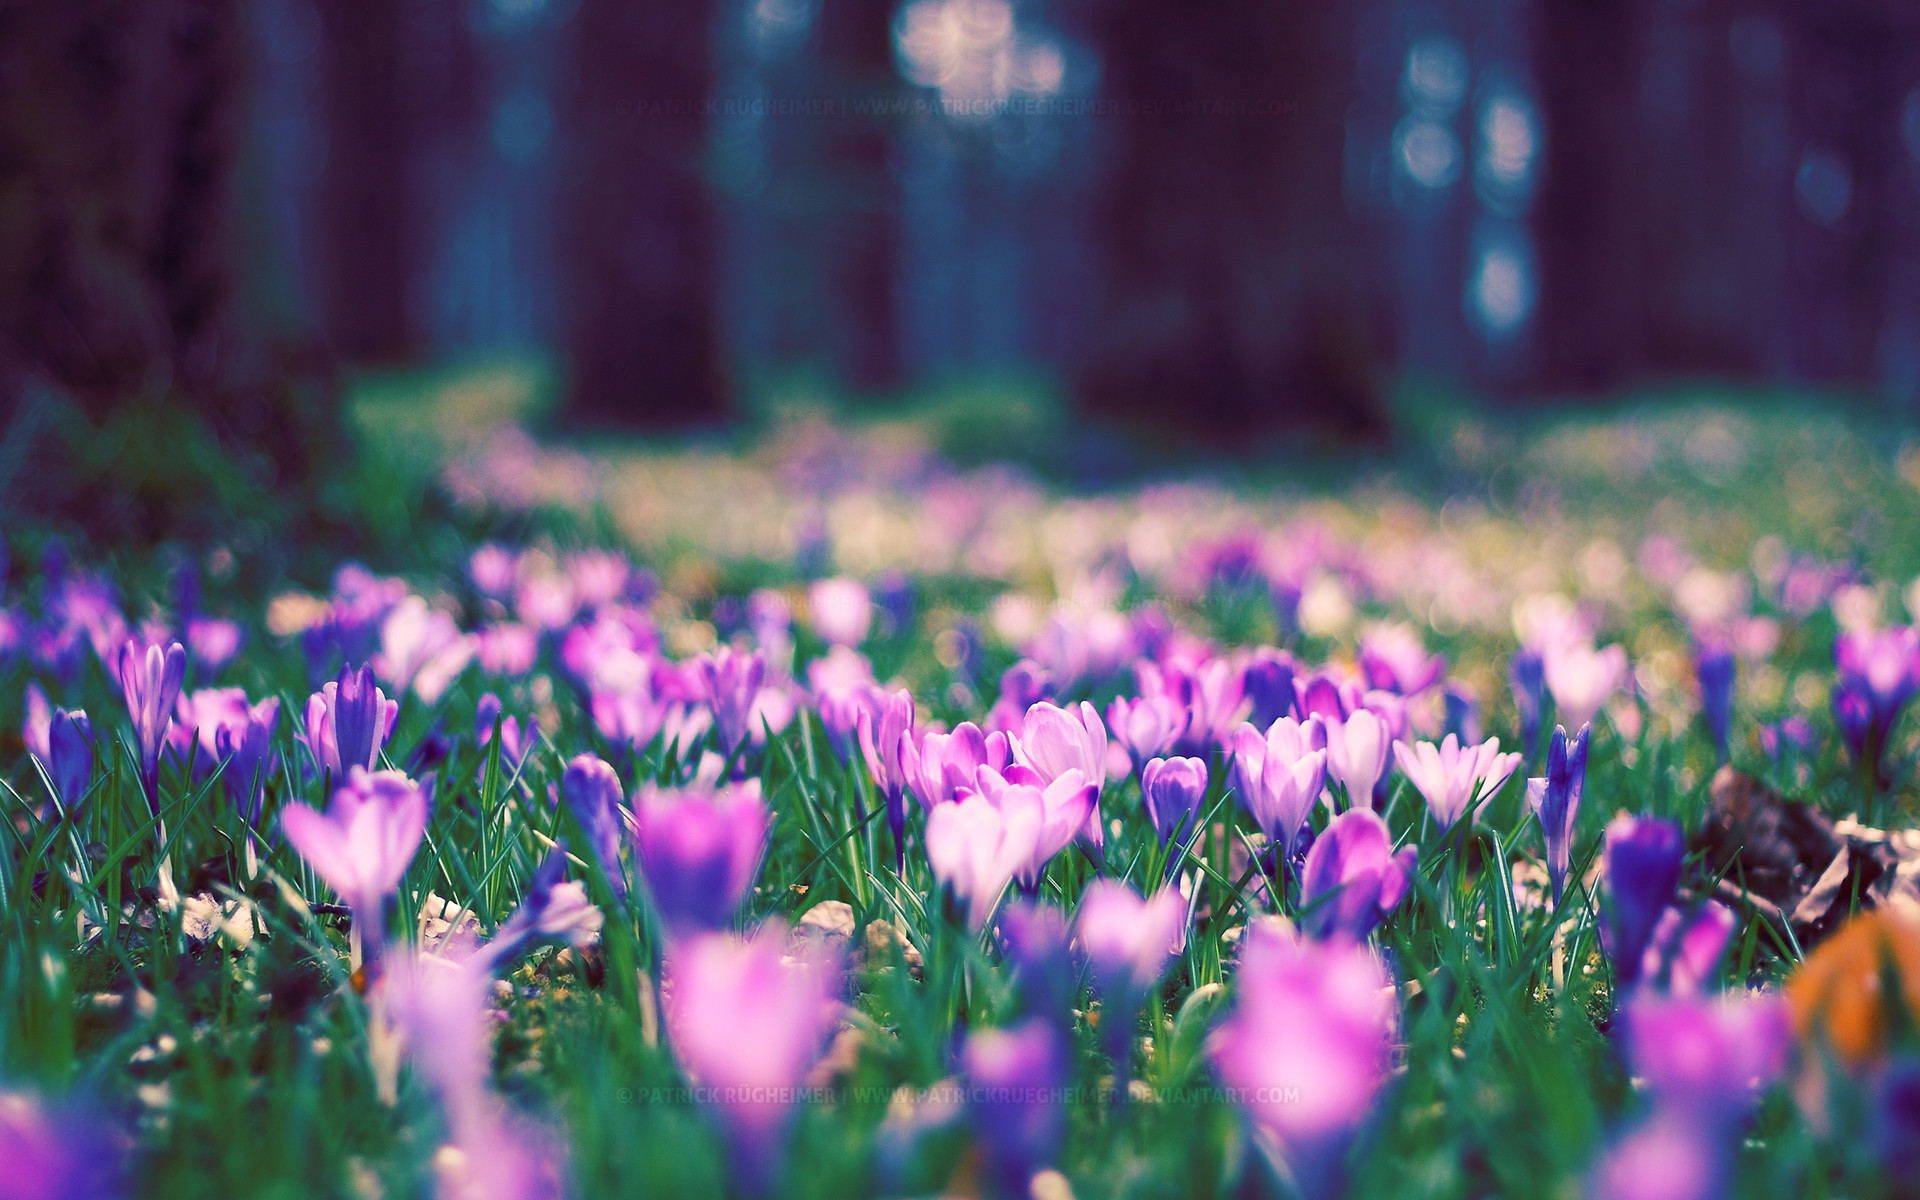 1920x1200 Download. « Spring Flowers HD Background Wallpaper · Spring Flowers  Background Wallpaper »